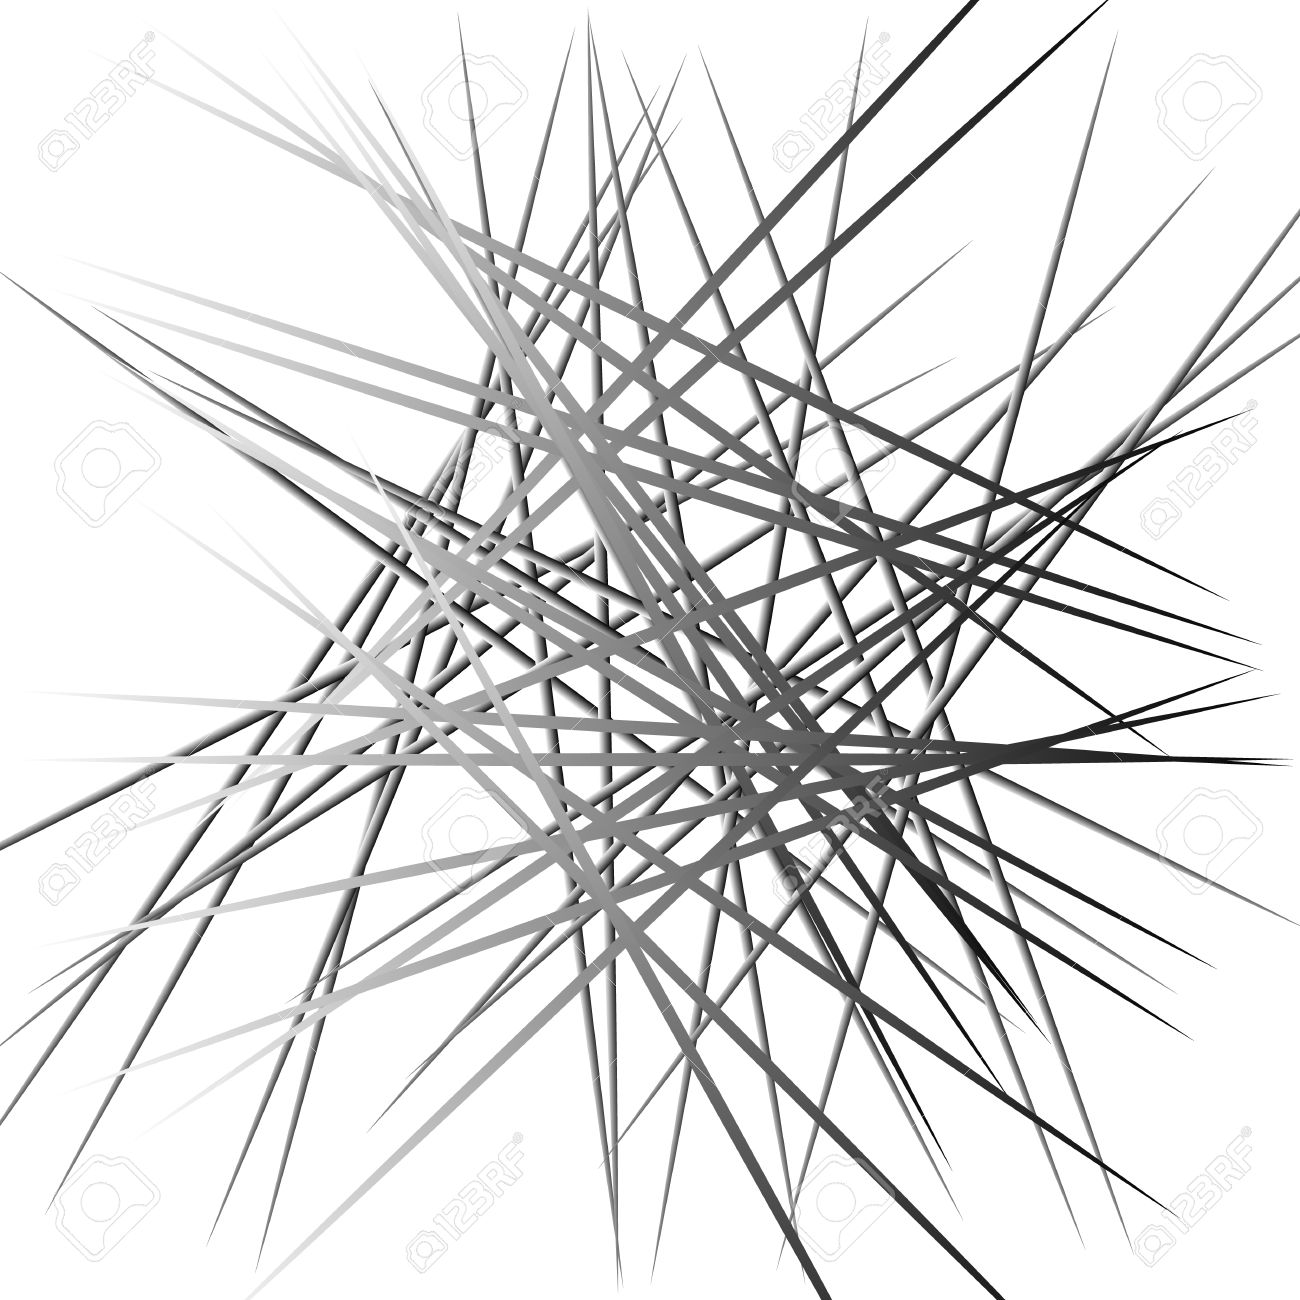 1300x1300 Abstract Chaotic Lines Pattern. Intersecting, Random Lines